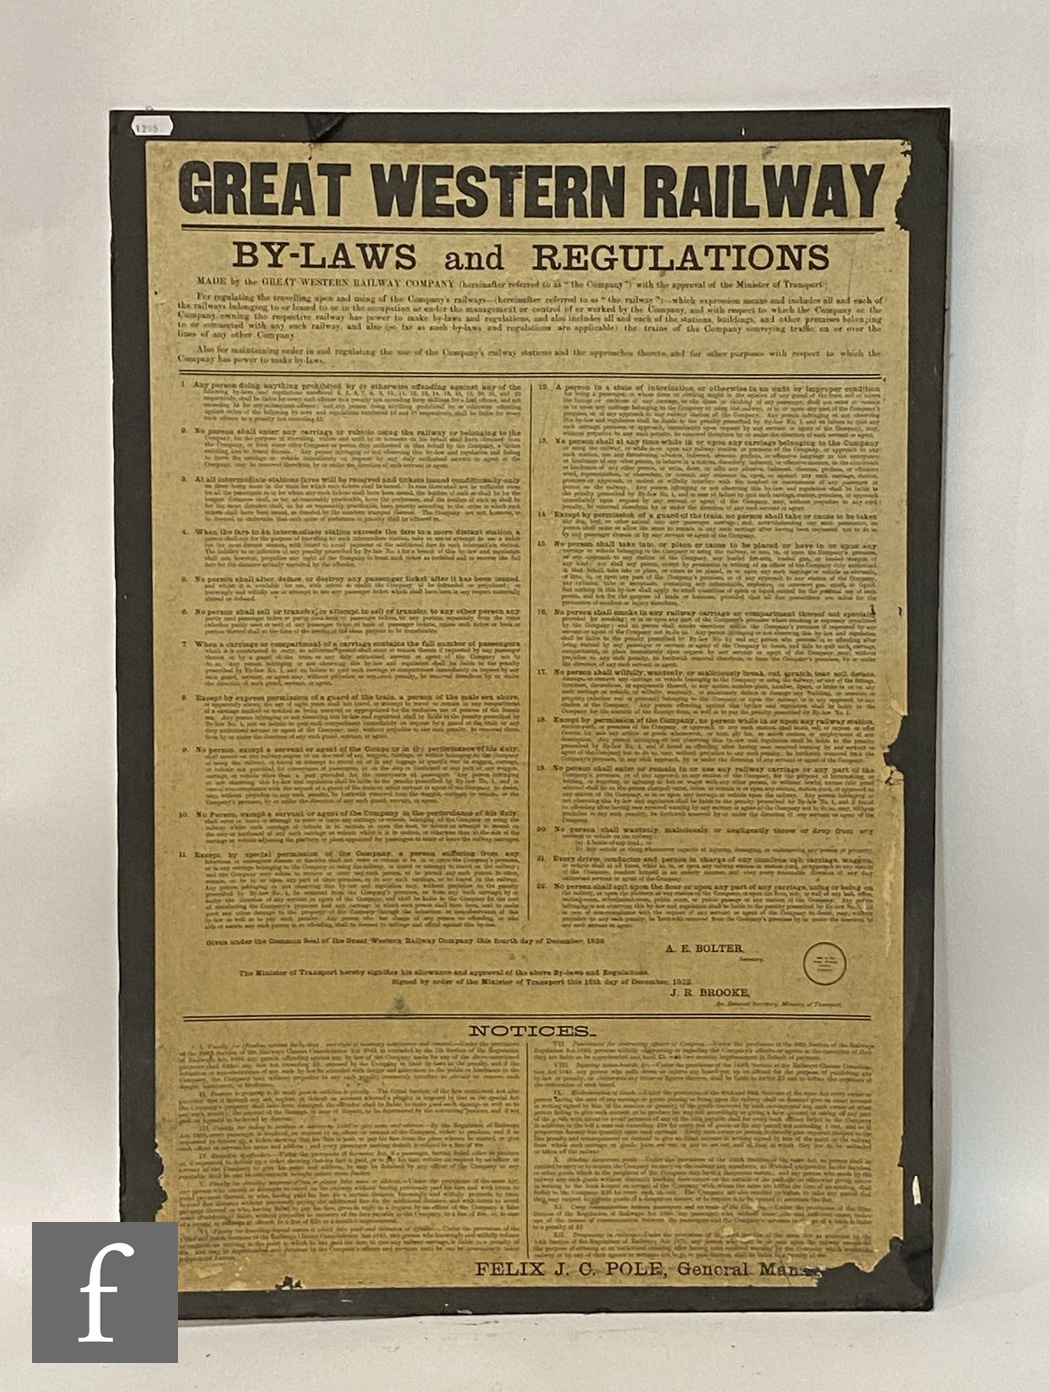 A Great Western railways By-Laws and Regulations display poster, another for Offences and - Image 3 of 3